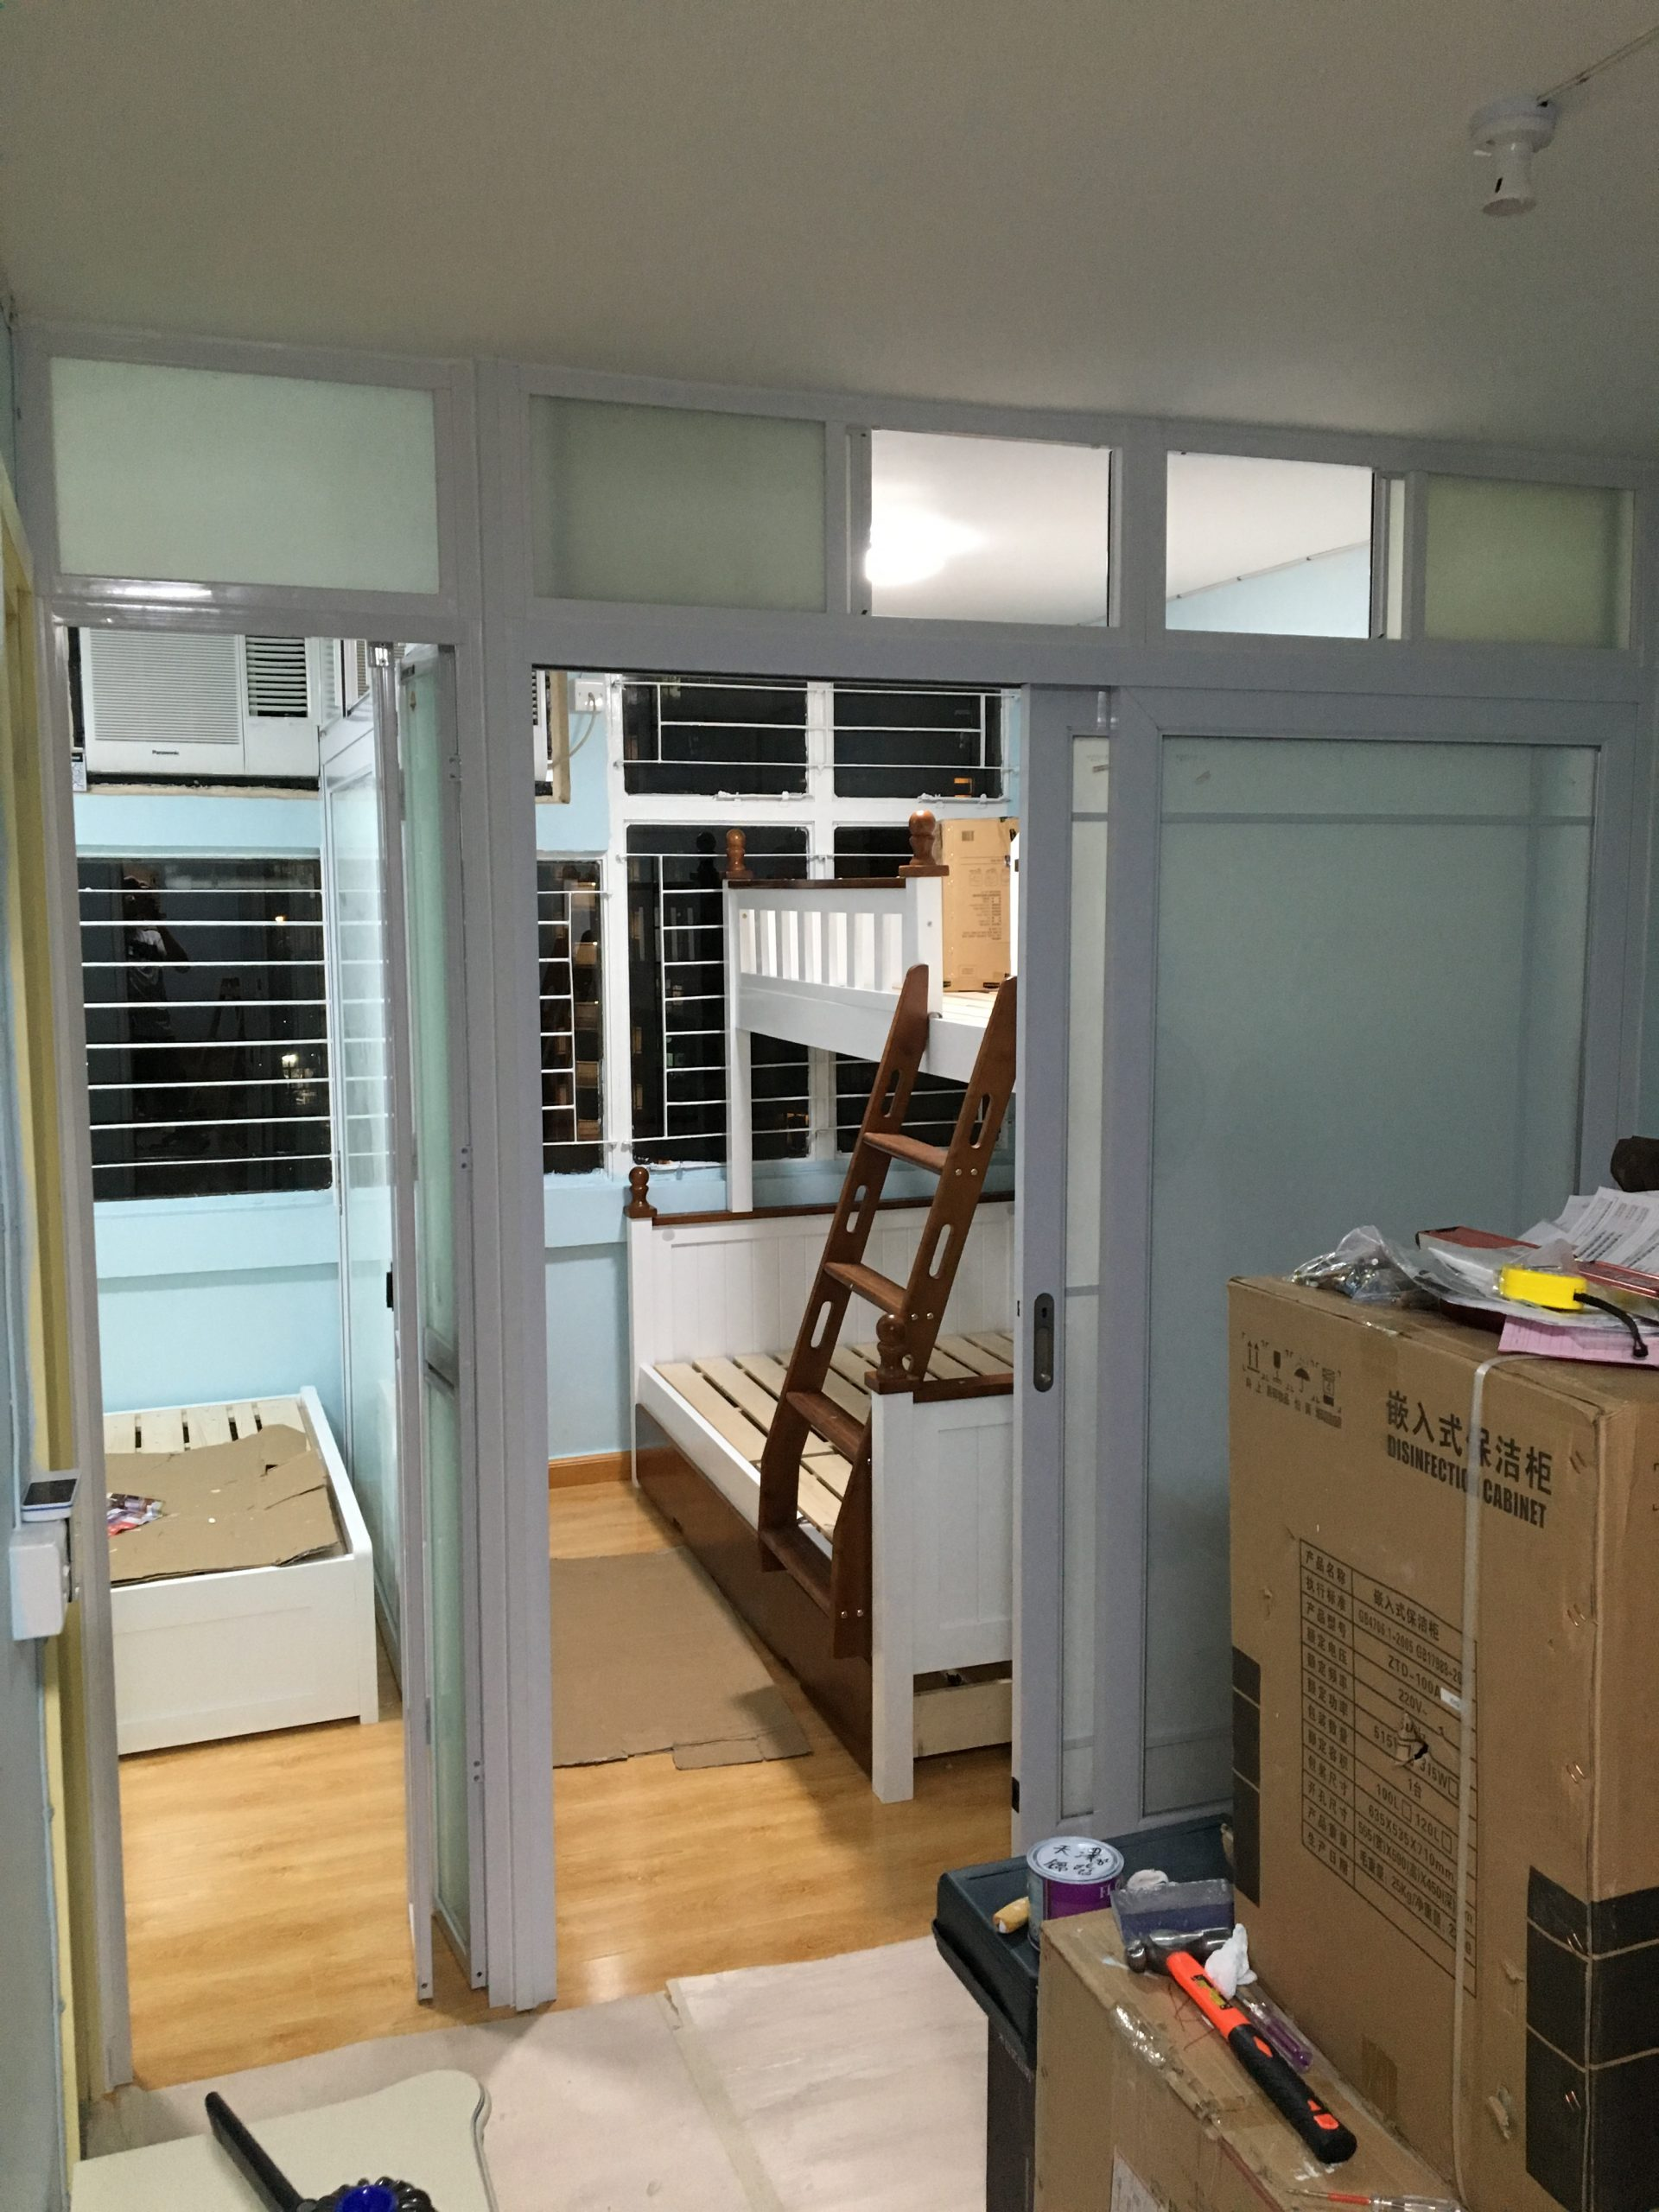 <p>Separate two different rooms</p>